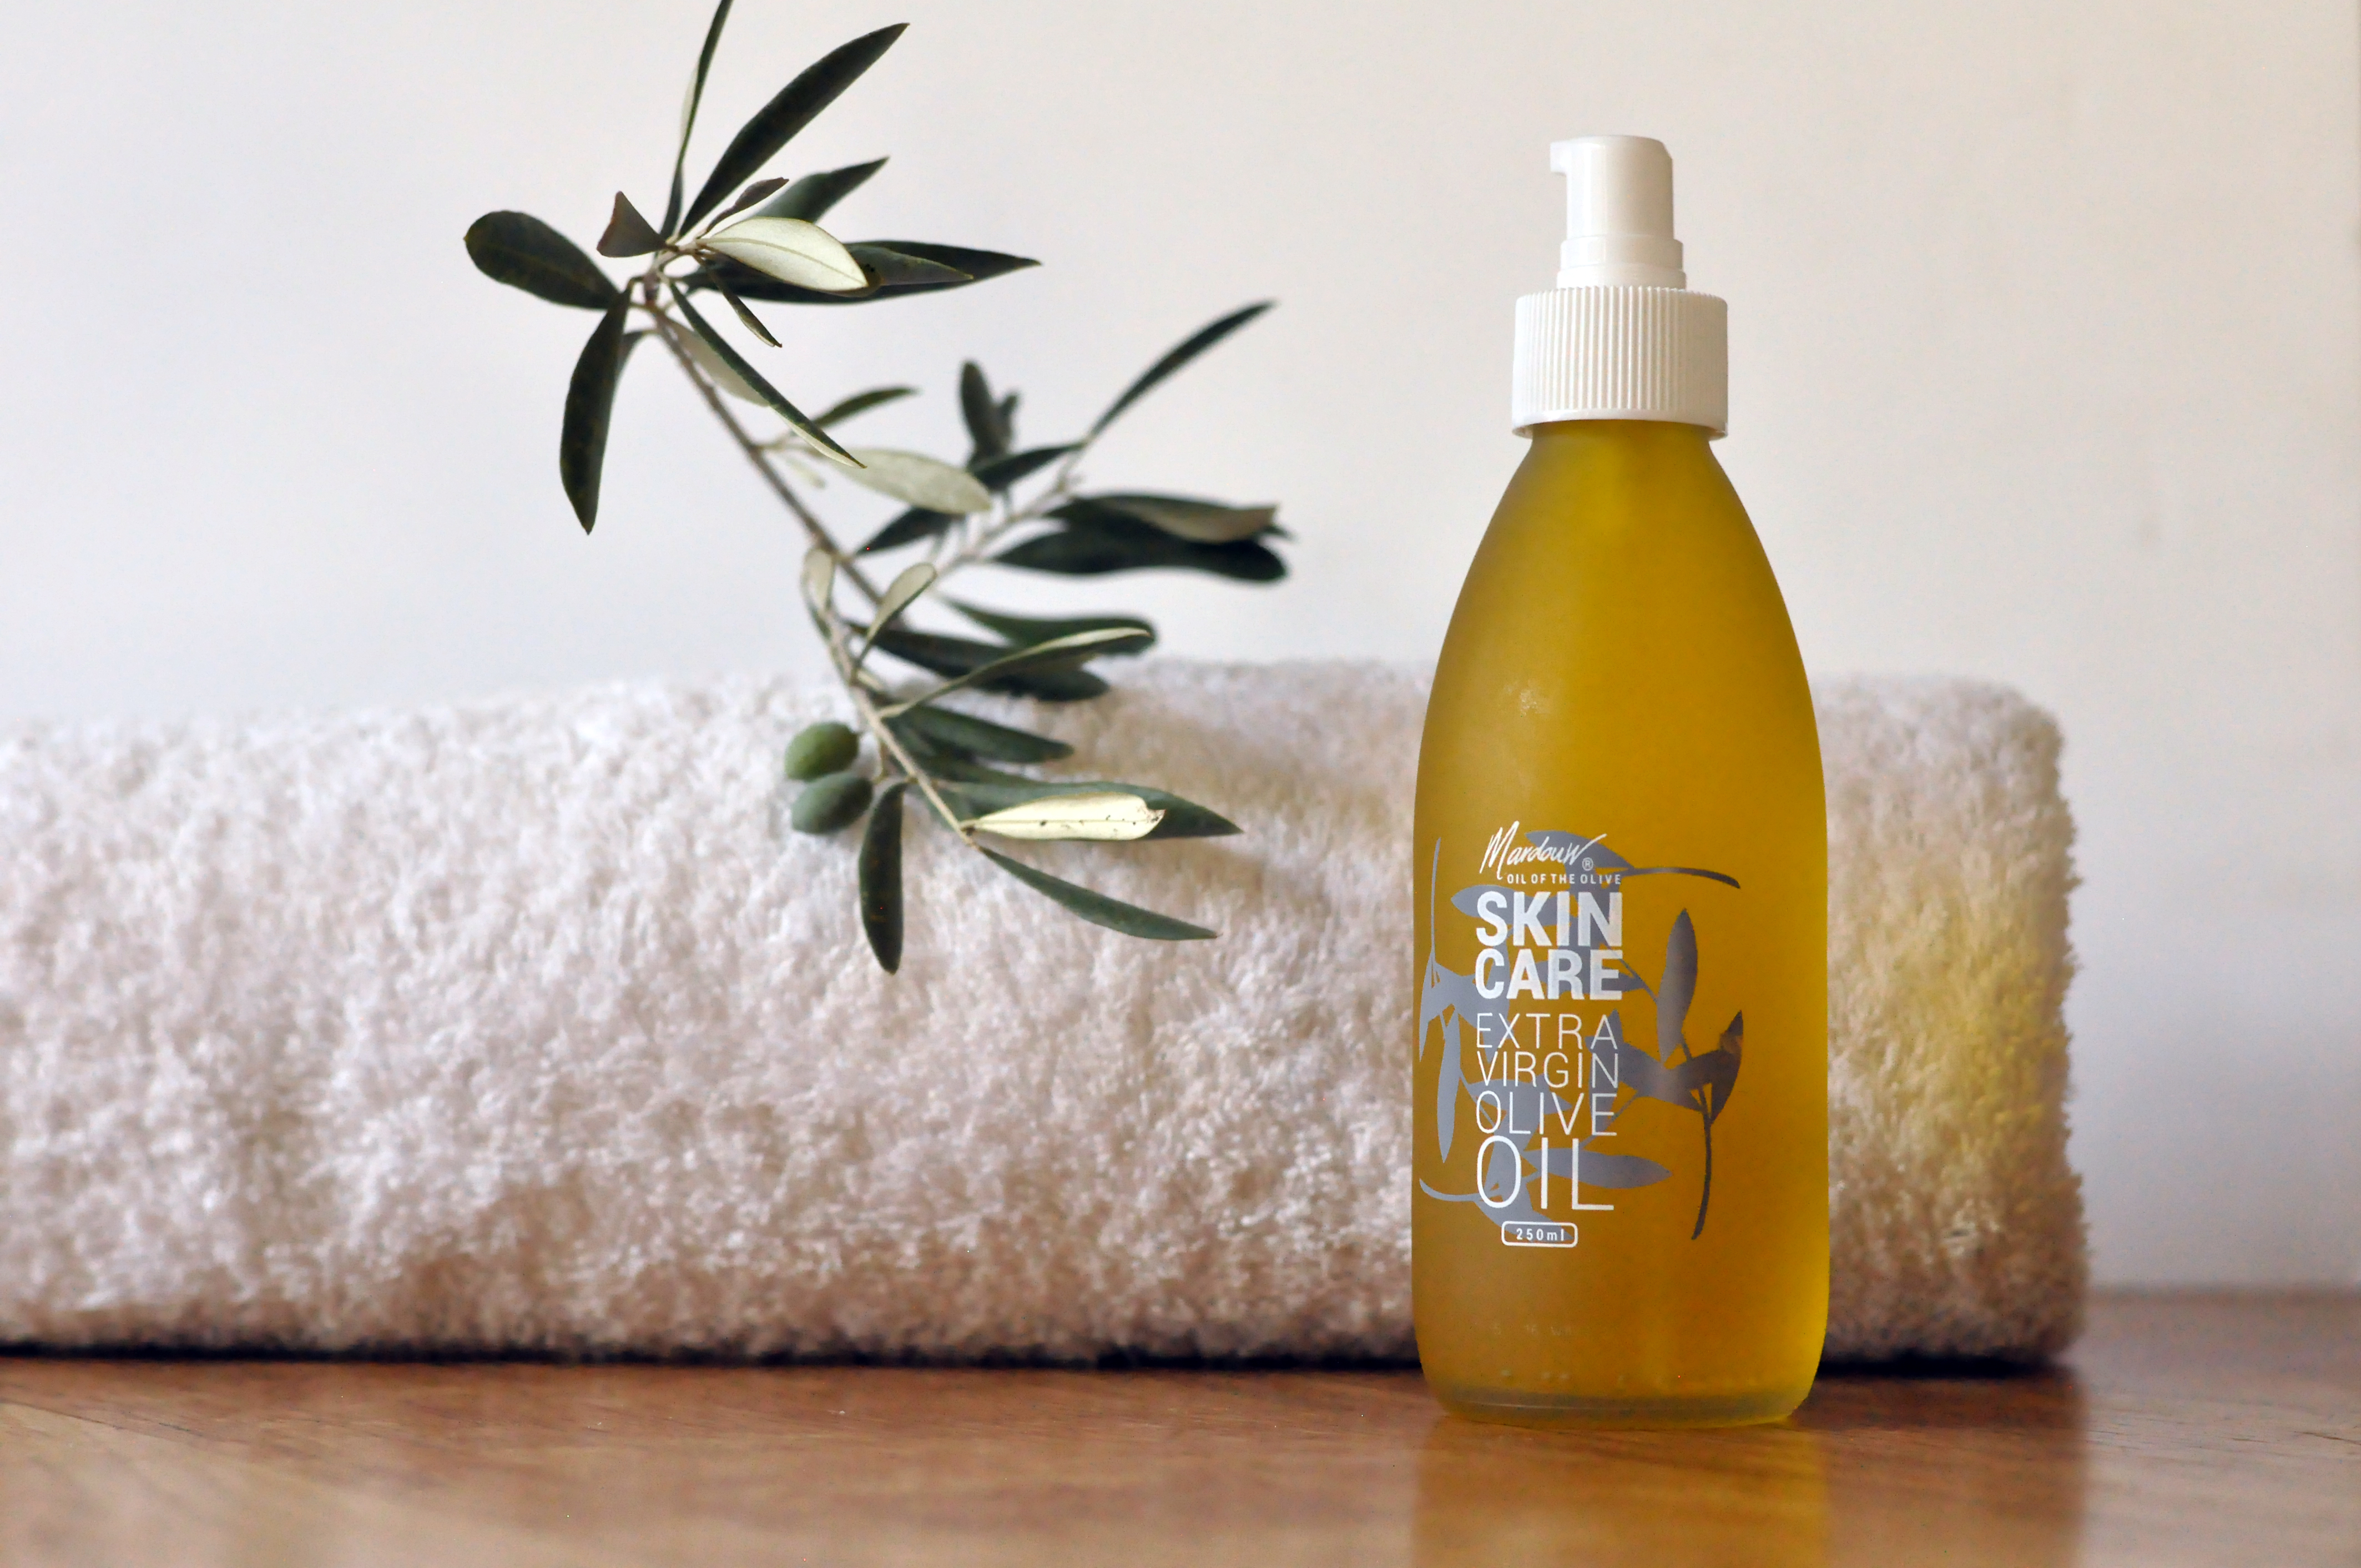 Extra Virgin Olive Oil for Skin Care